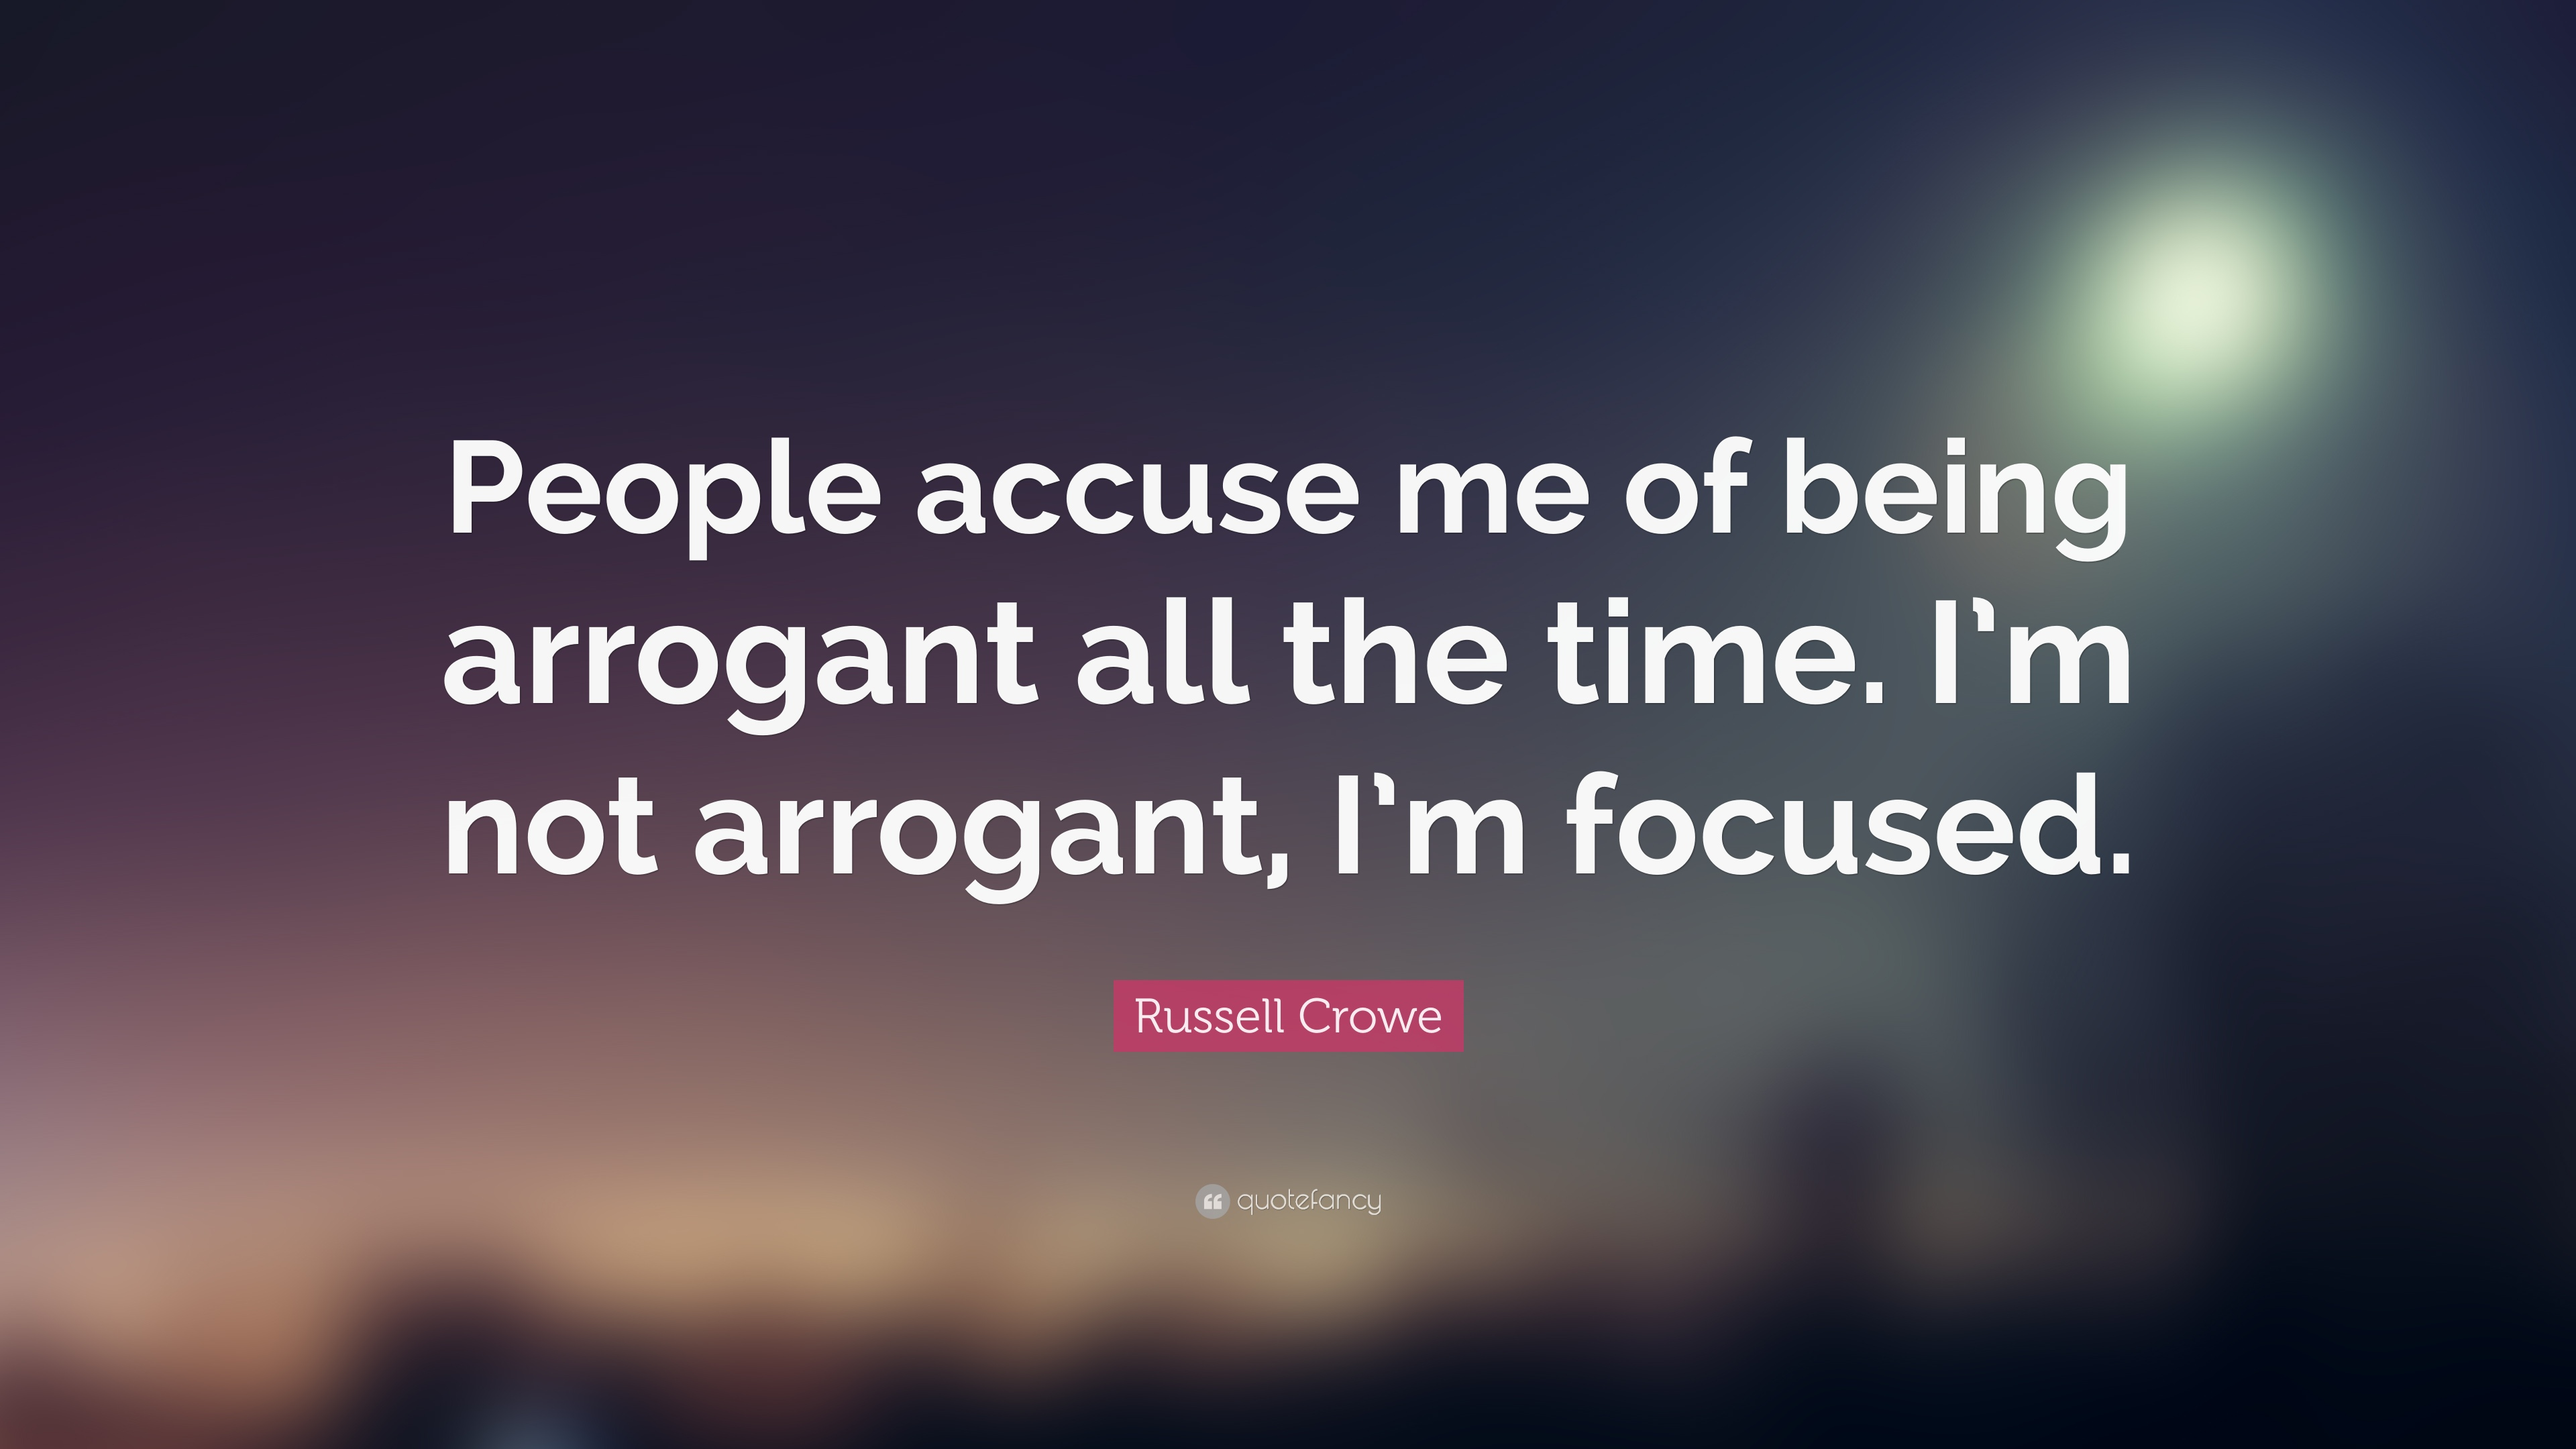 Russell Crowe Quote People Accuse Me Of Being Arrogant All The